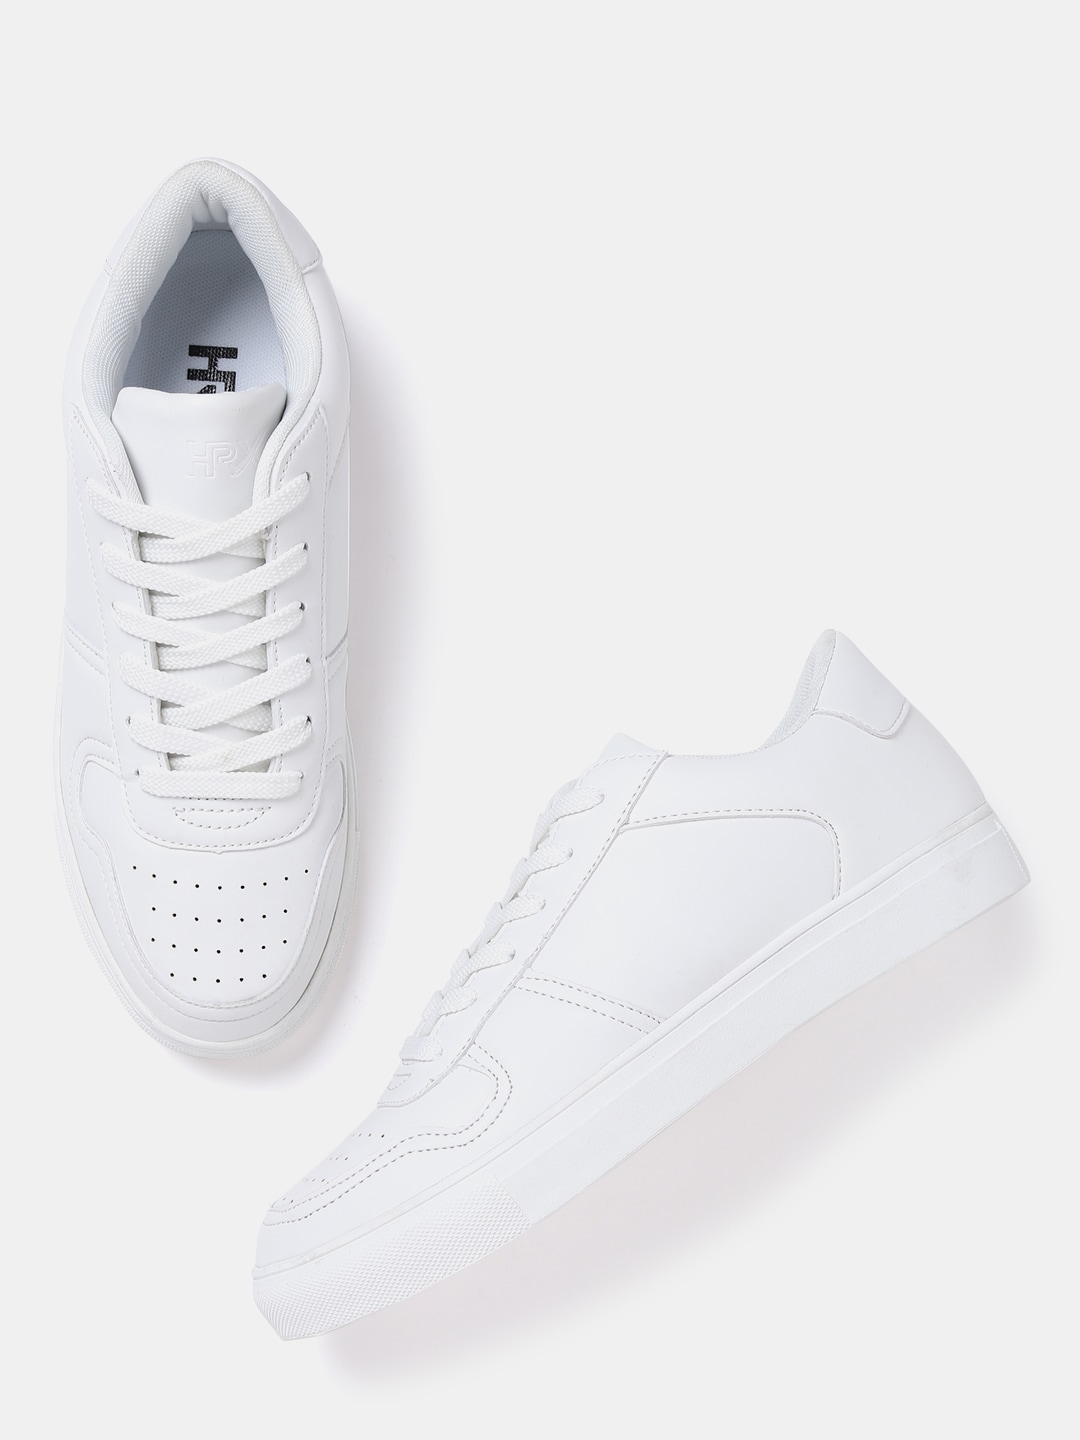 White Casual Shoes - Buy White Casual Shoes online in India